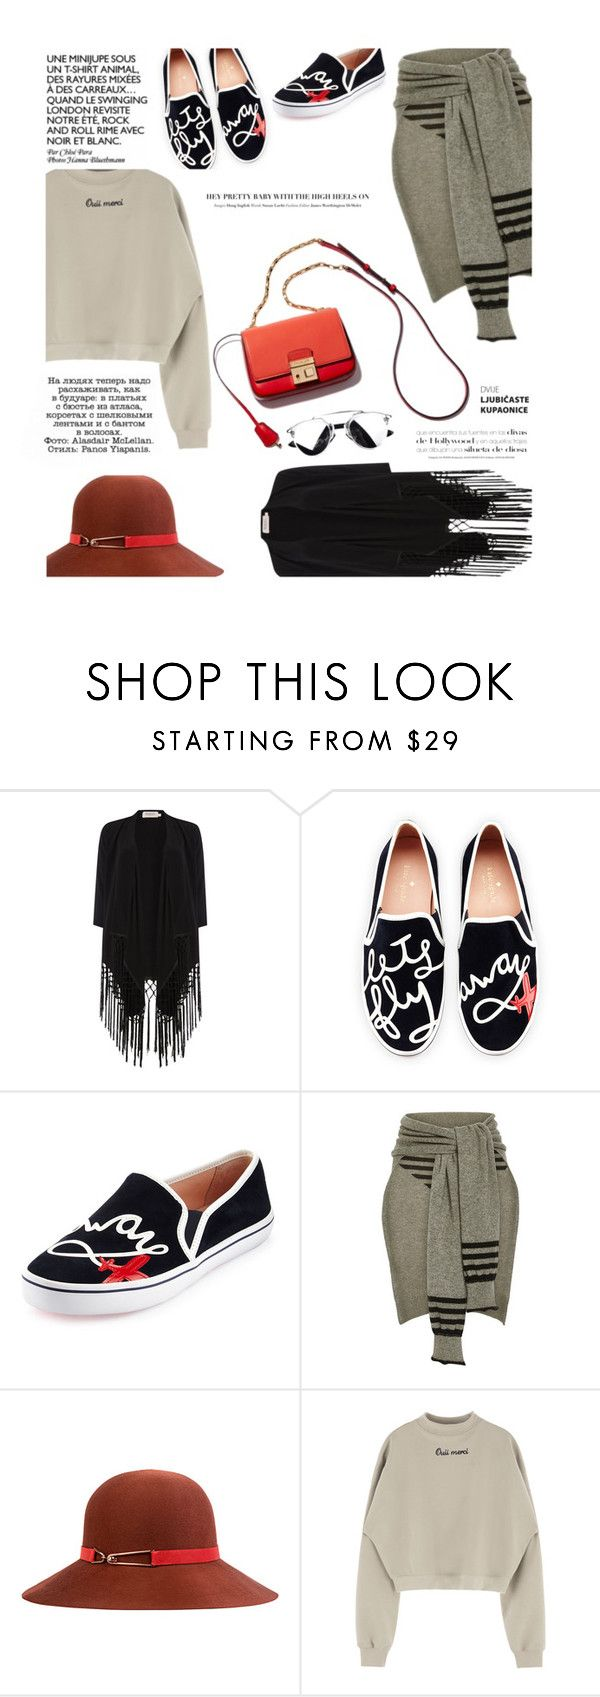 """Untitled #1398"" by zayngirl1dlove ❤ liked on Polyvore featuring Soaked in Luxury, Kate Spade, Sonia Rykiel, Eugenia Kim, women's clothing, women, female, woman, misses and juniors"